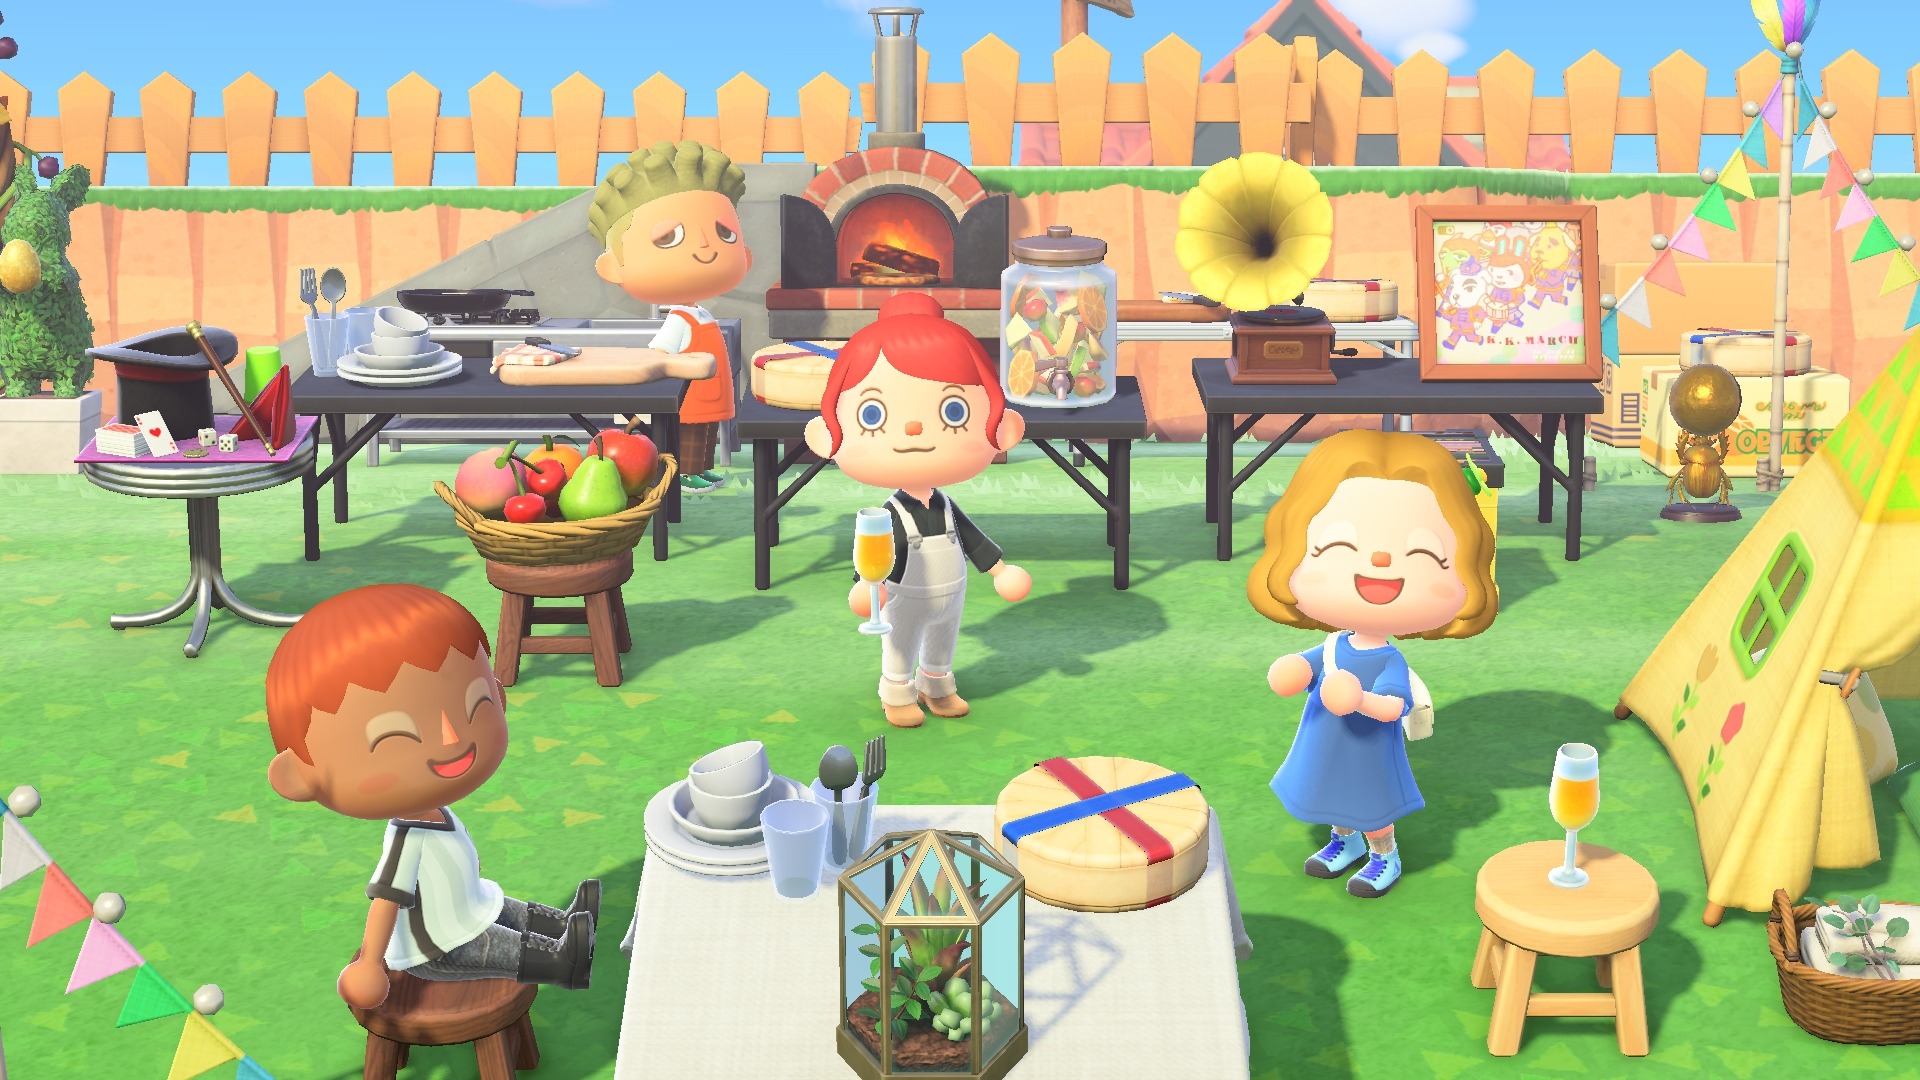 Animal Crossing New Horizons: New update tomorrow, these events are coming up